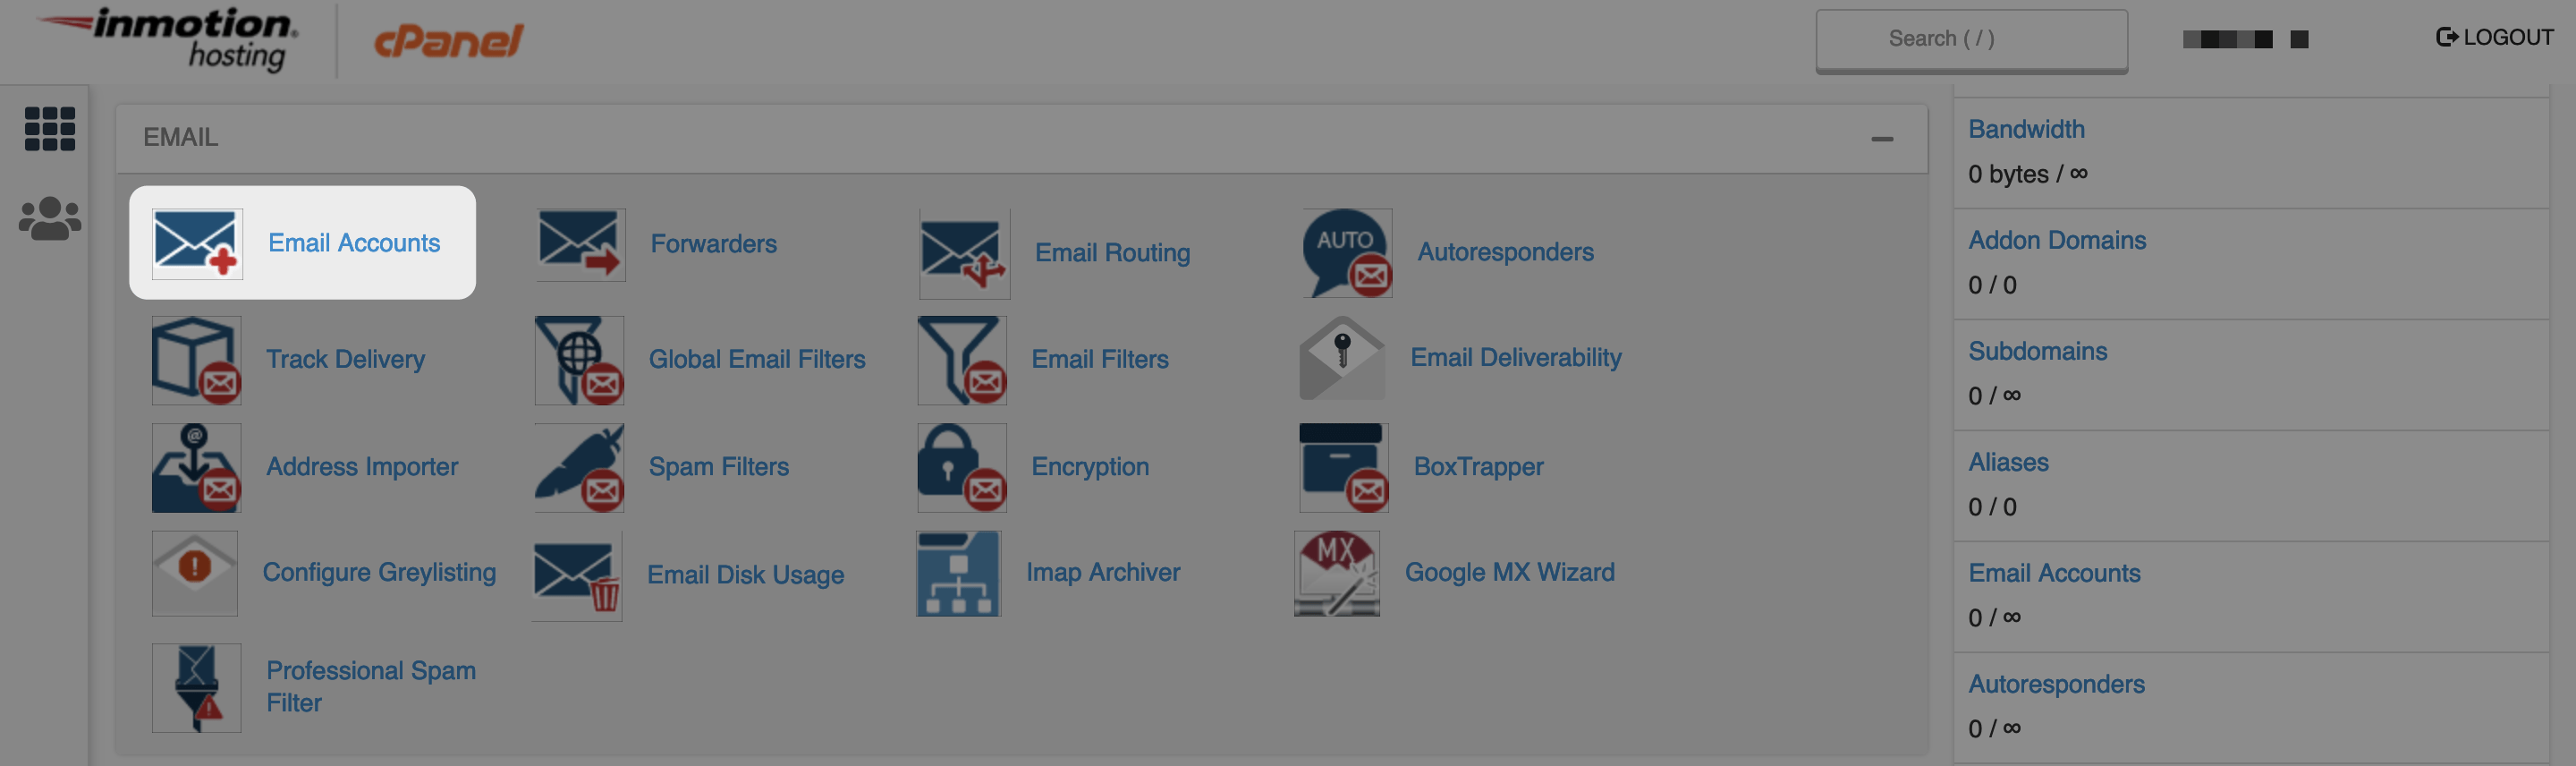 The Email Accounts option in cPanel.